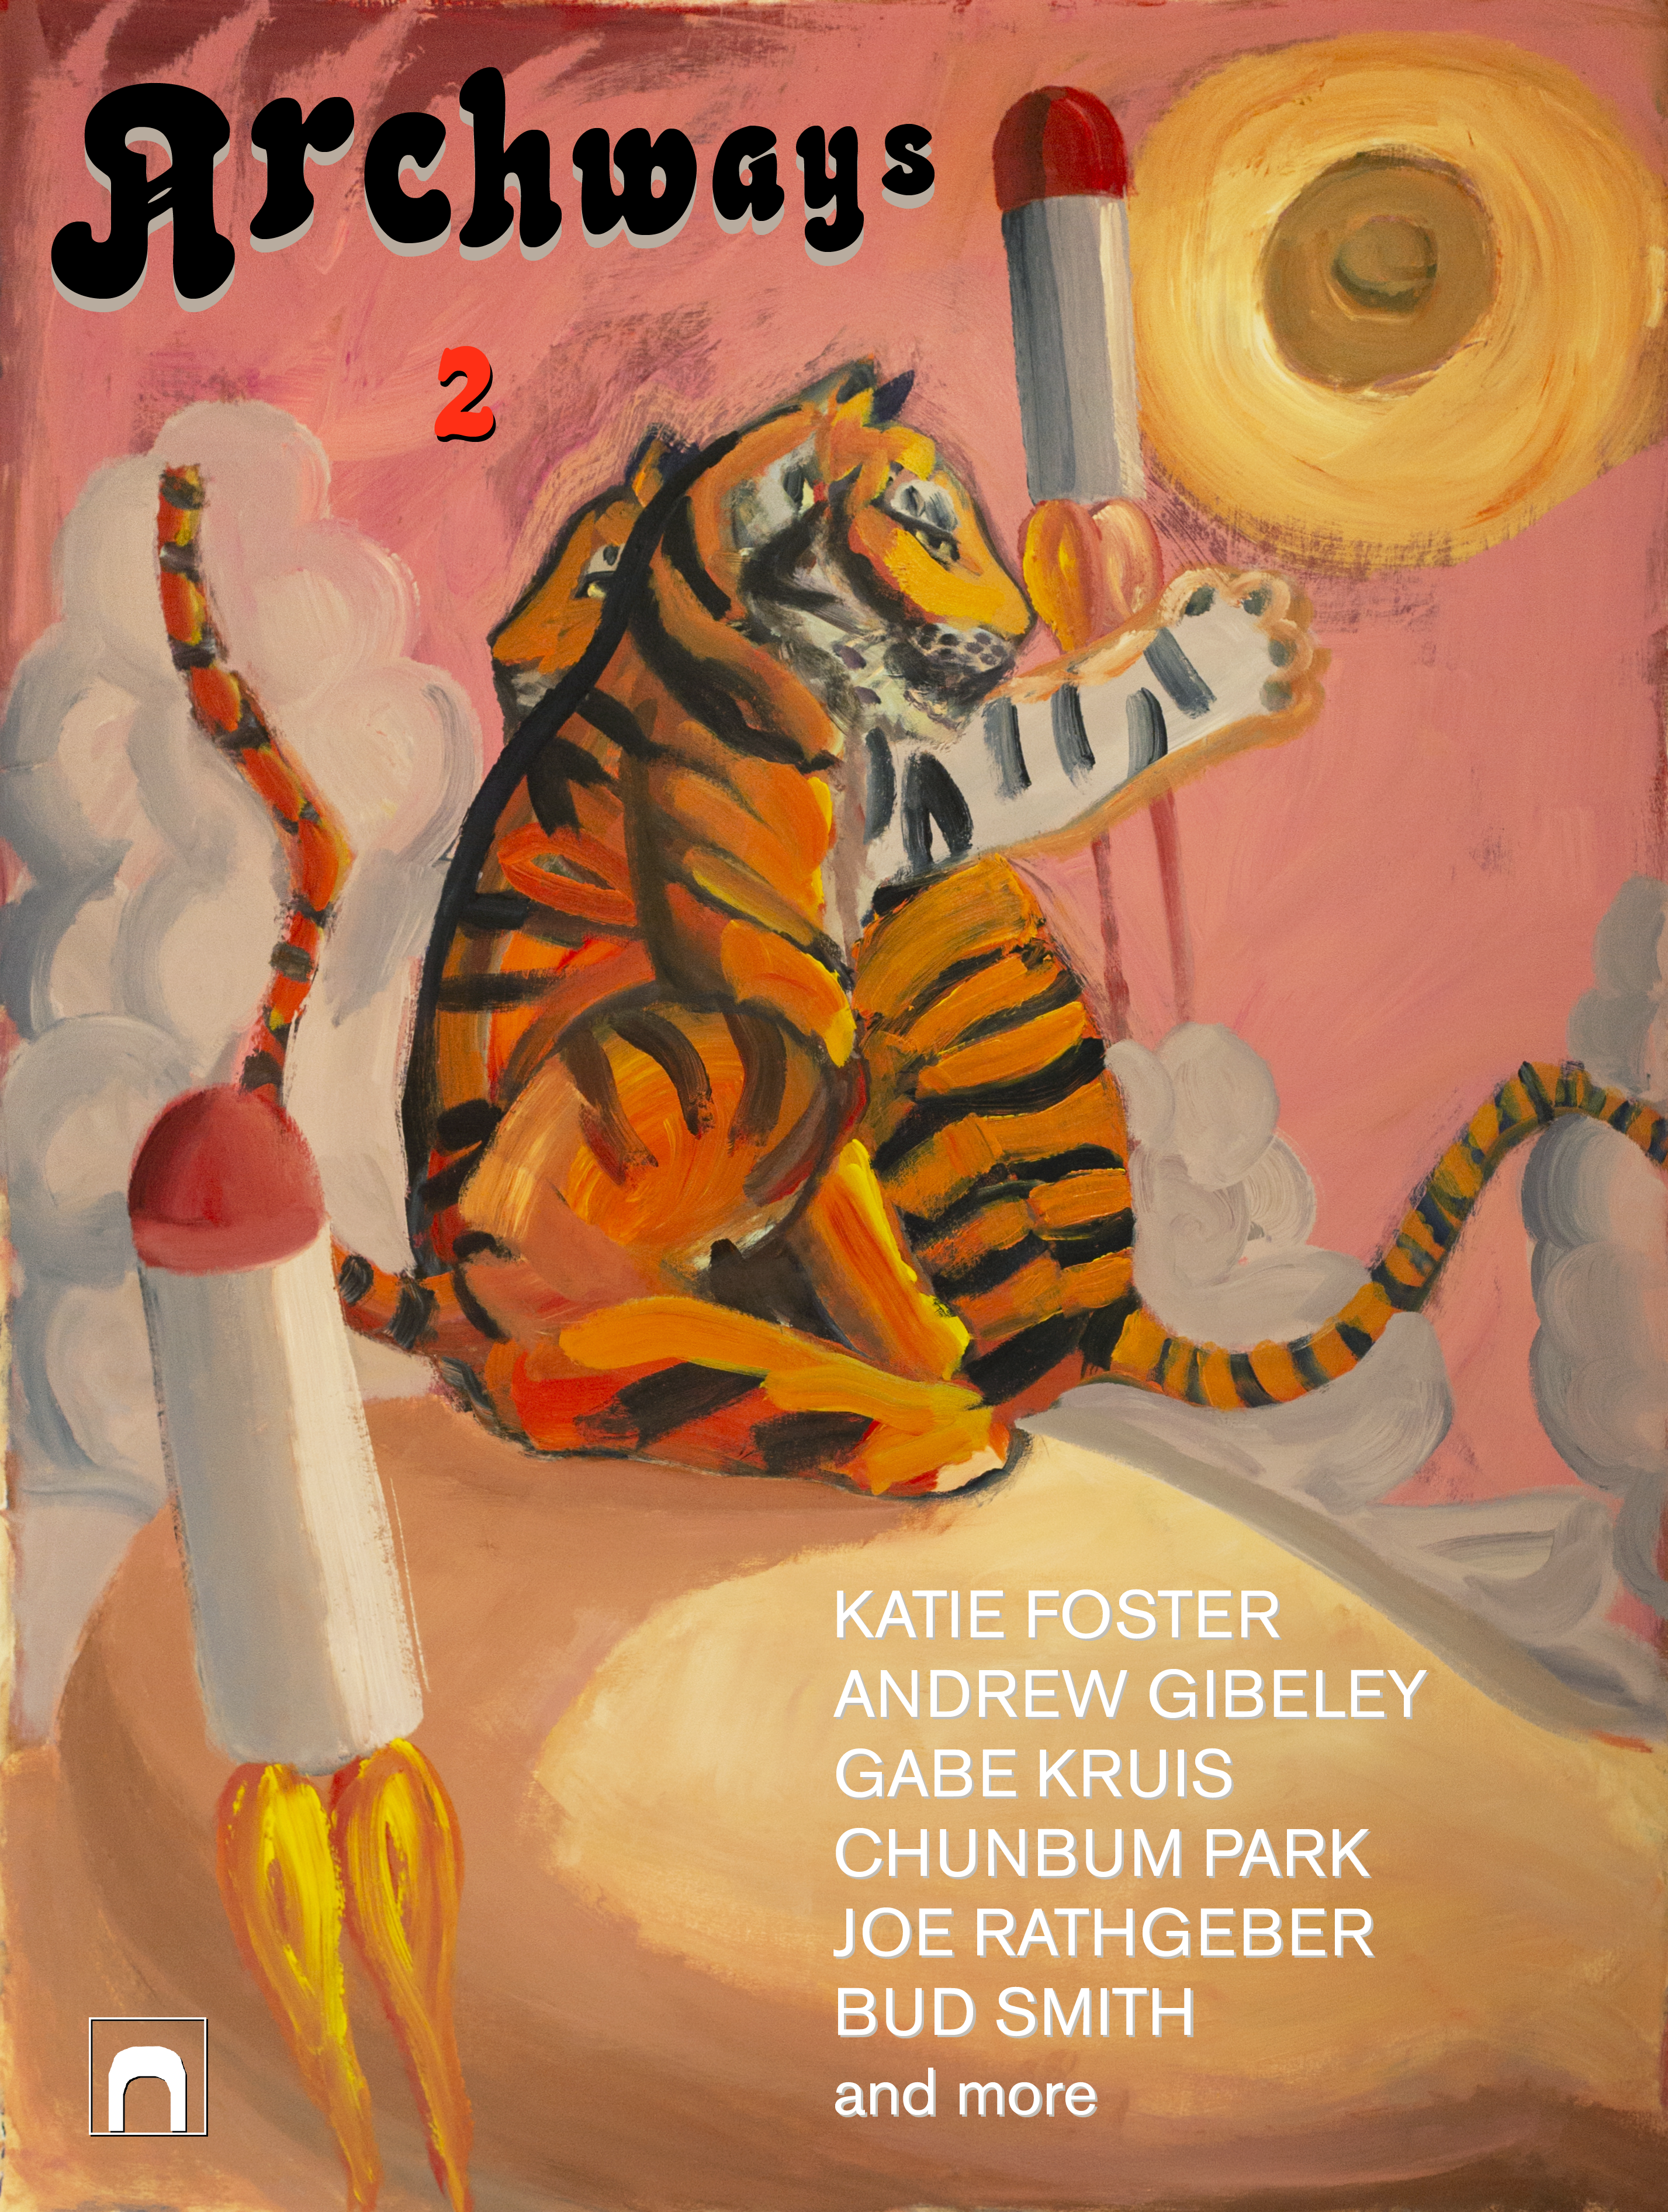 Archways 2 featuring Katie Foster, Andrew Gibeley, Gabe Kruis, Bud Smith and more